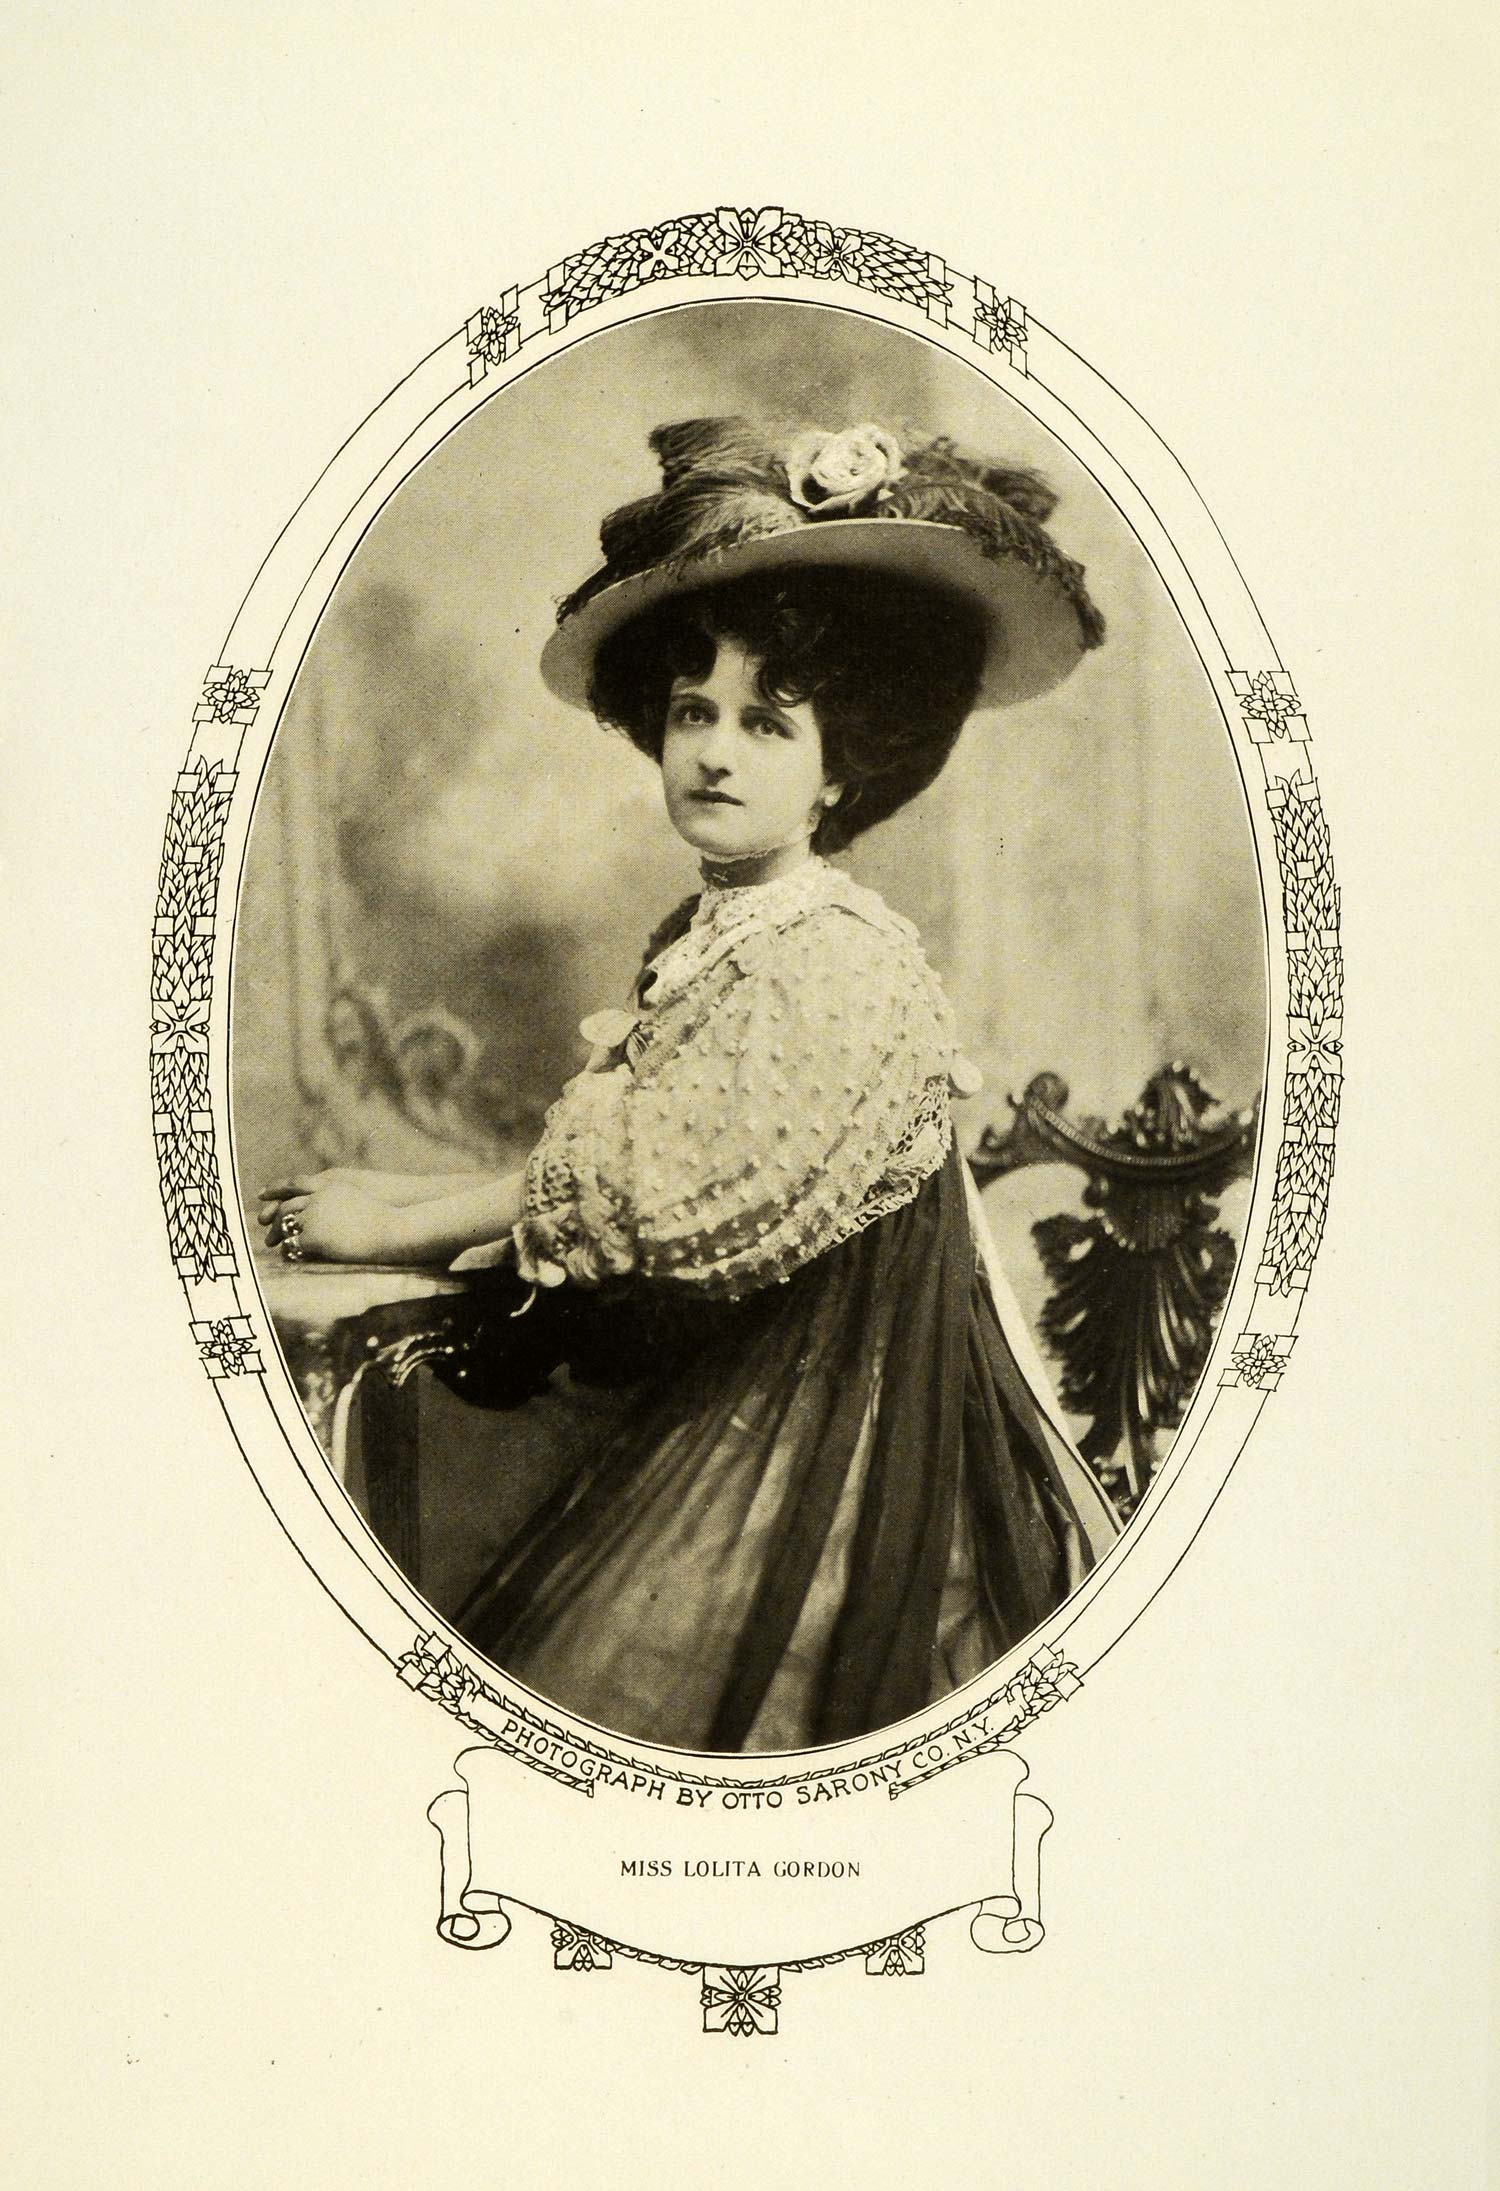 1908 Print Theater Lolita Gordon Portrait Art Nouveau Border Edwardian RB1